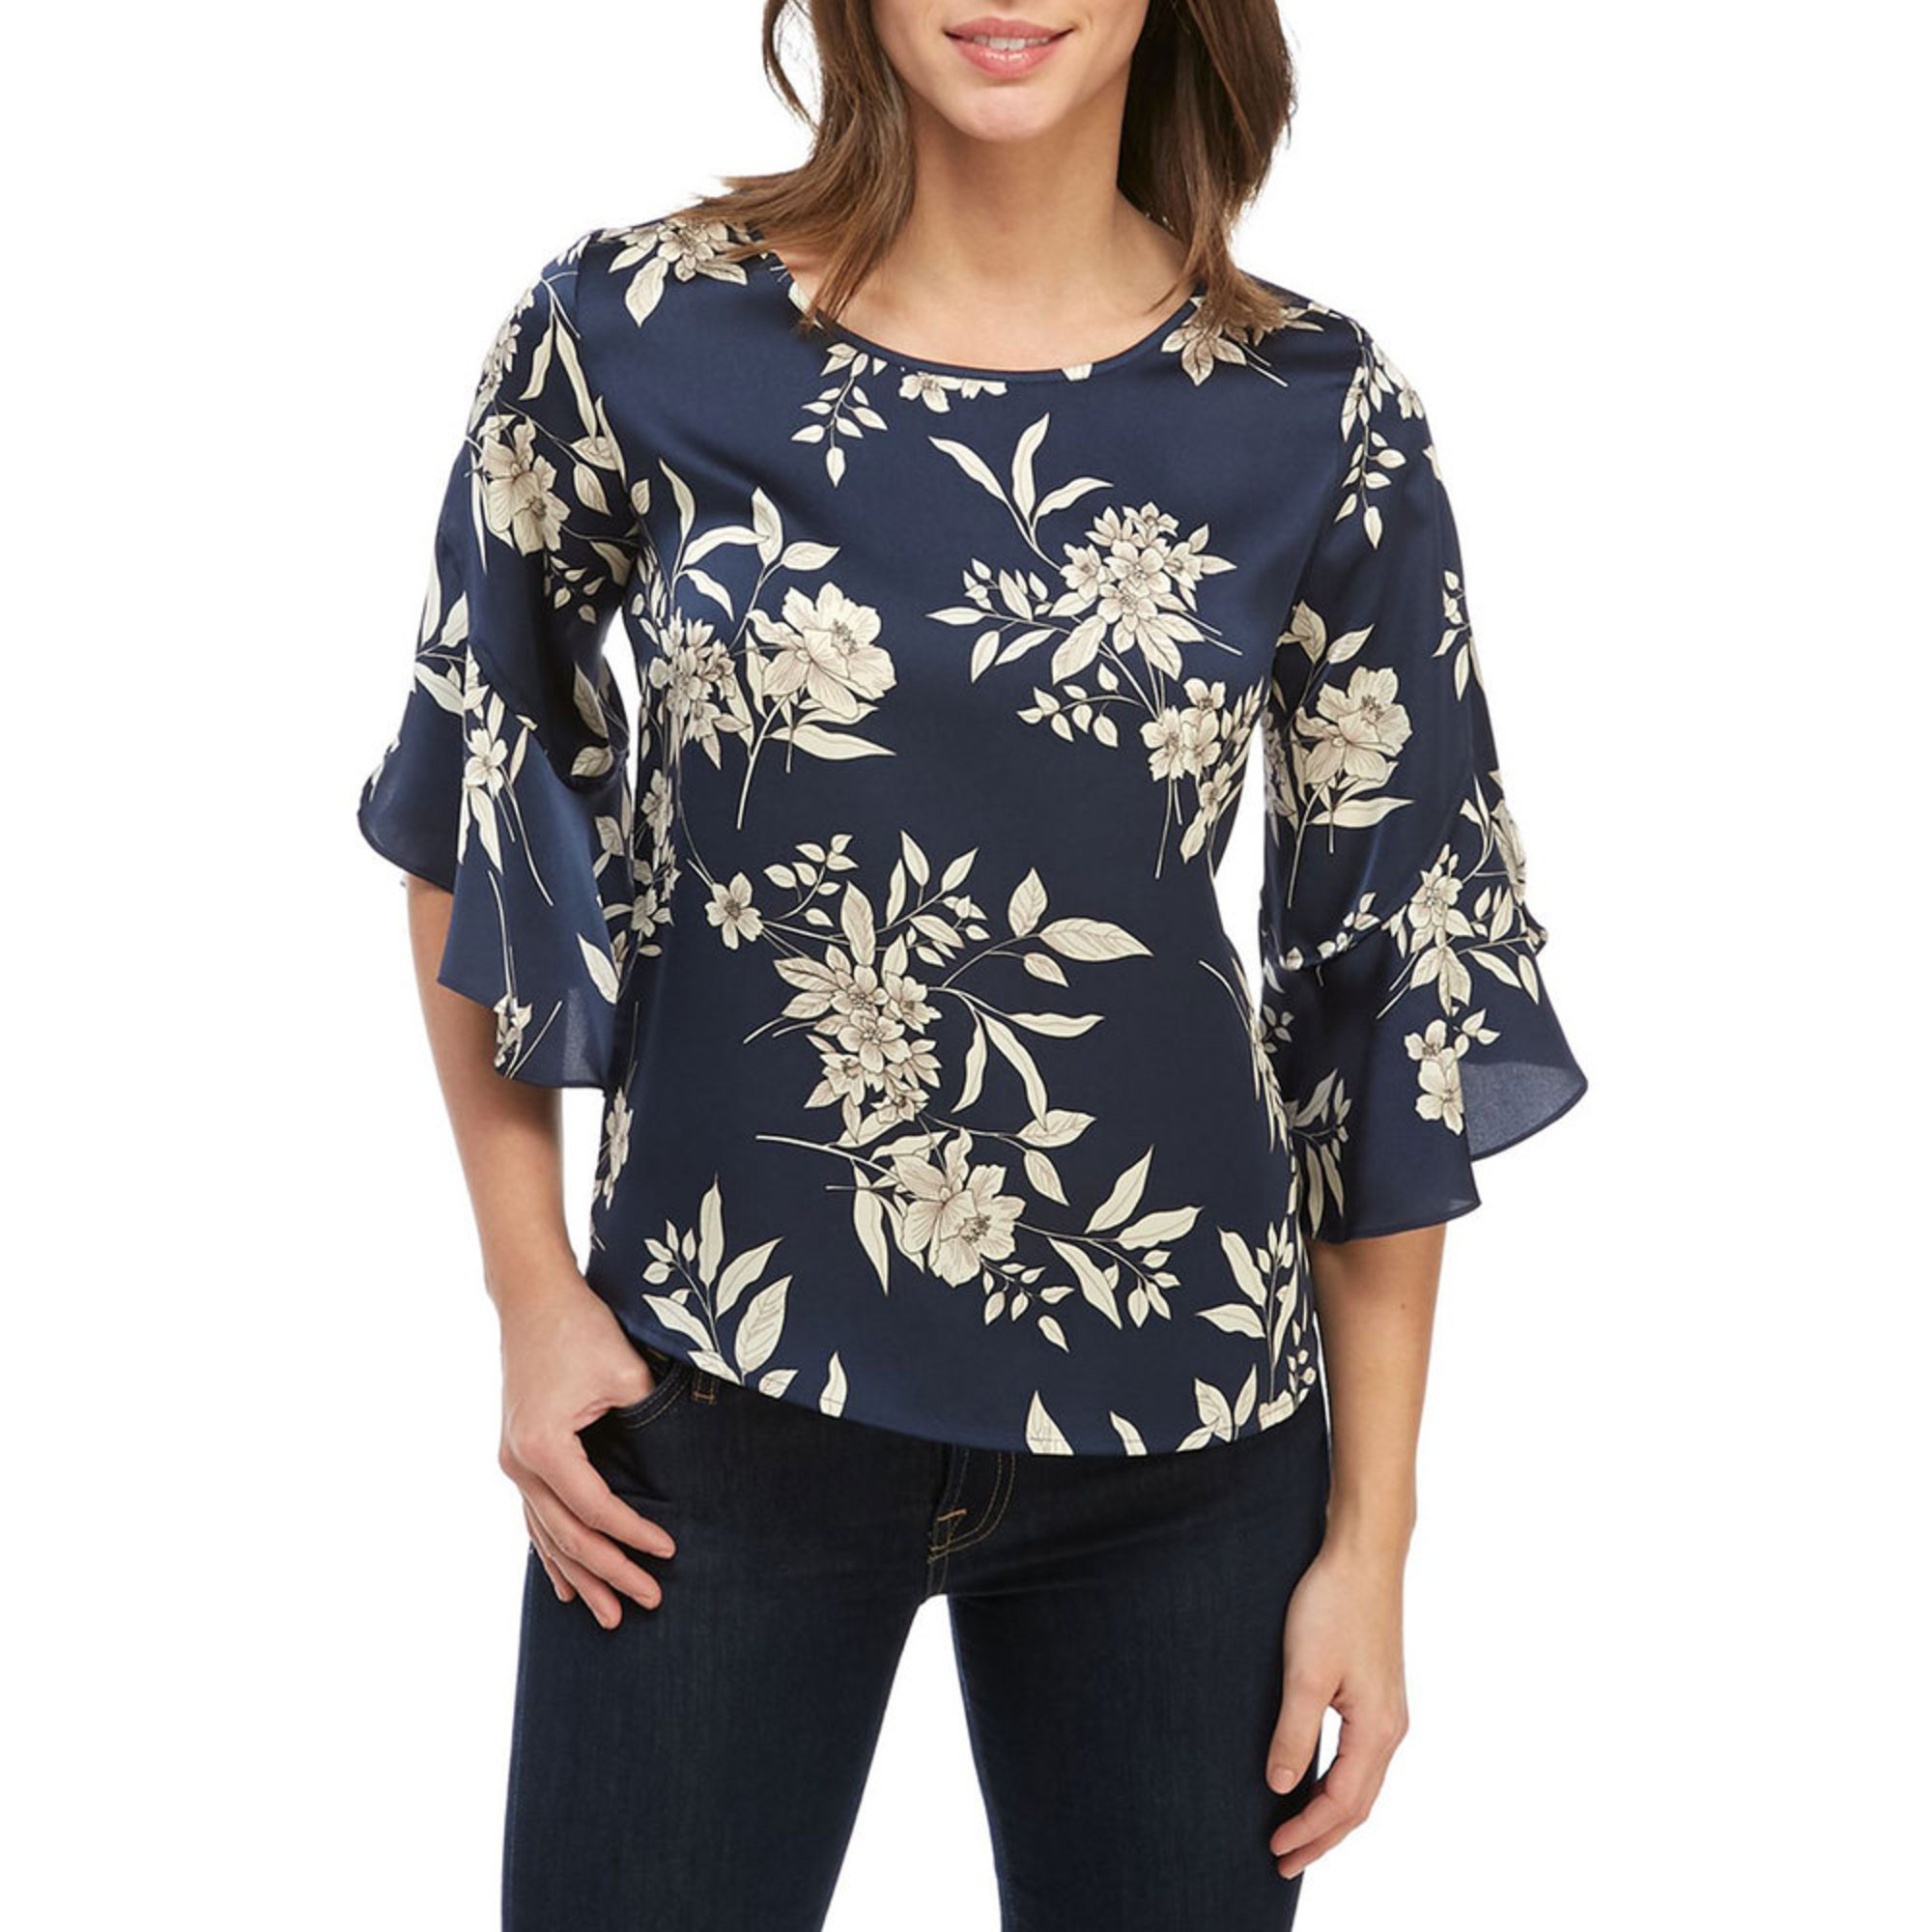 7438b0f54598 Vince Camuto. Vince Camuto Women's Bell Sleeve Etched Floral Blouse